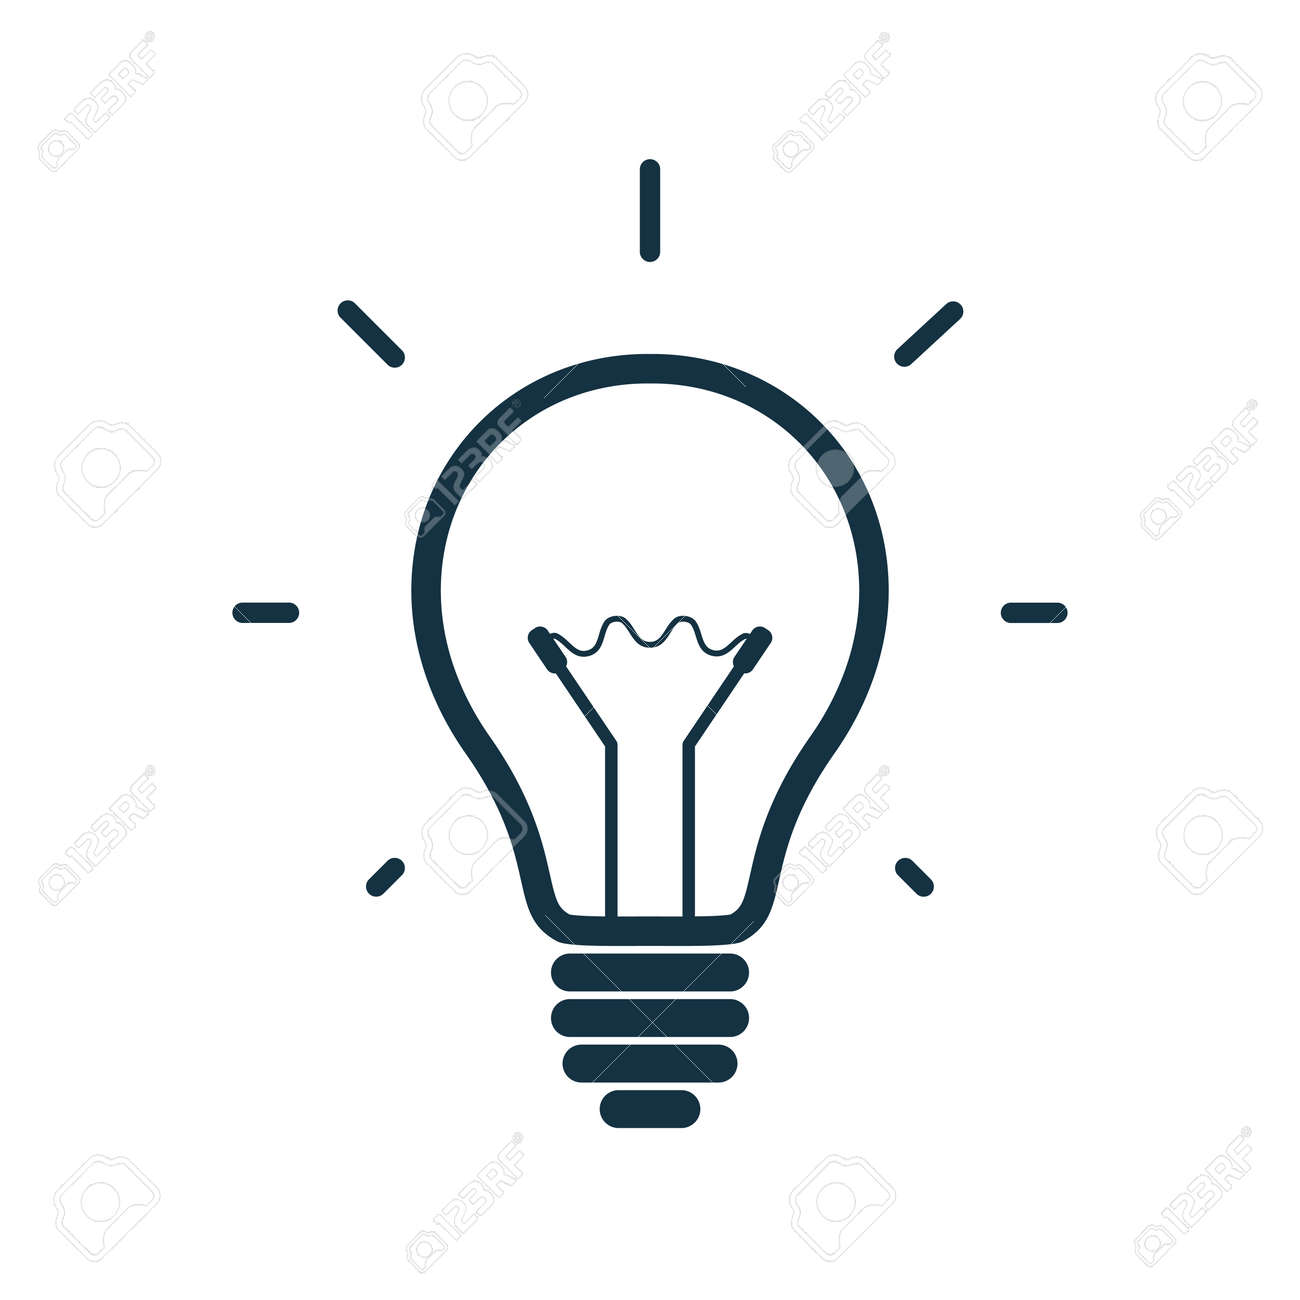 Simple light bulb icon isolated on white background. Vector illustration - 33927271